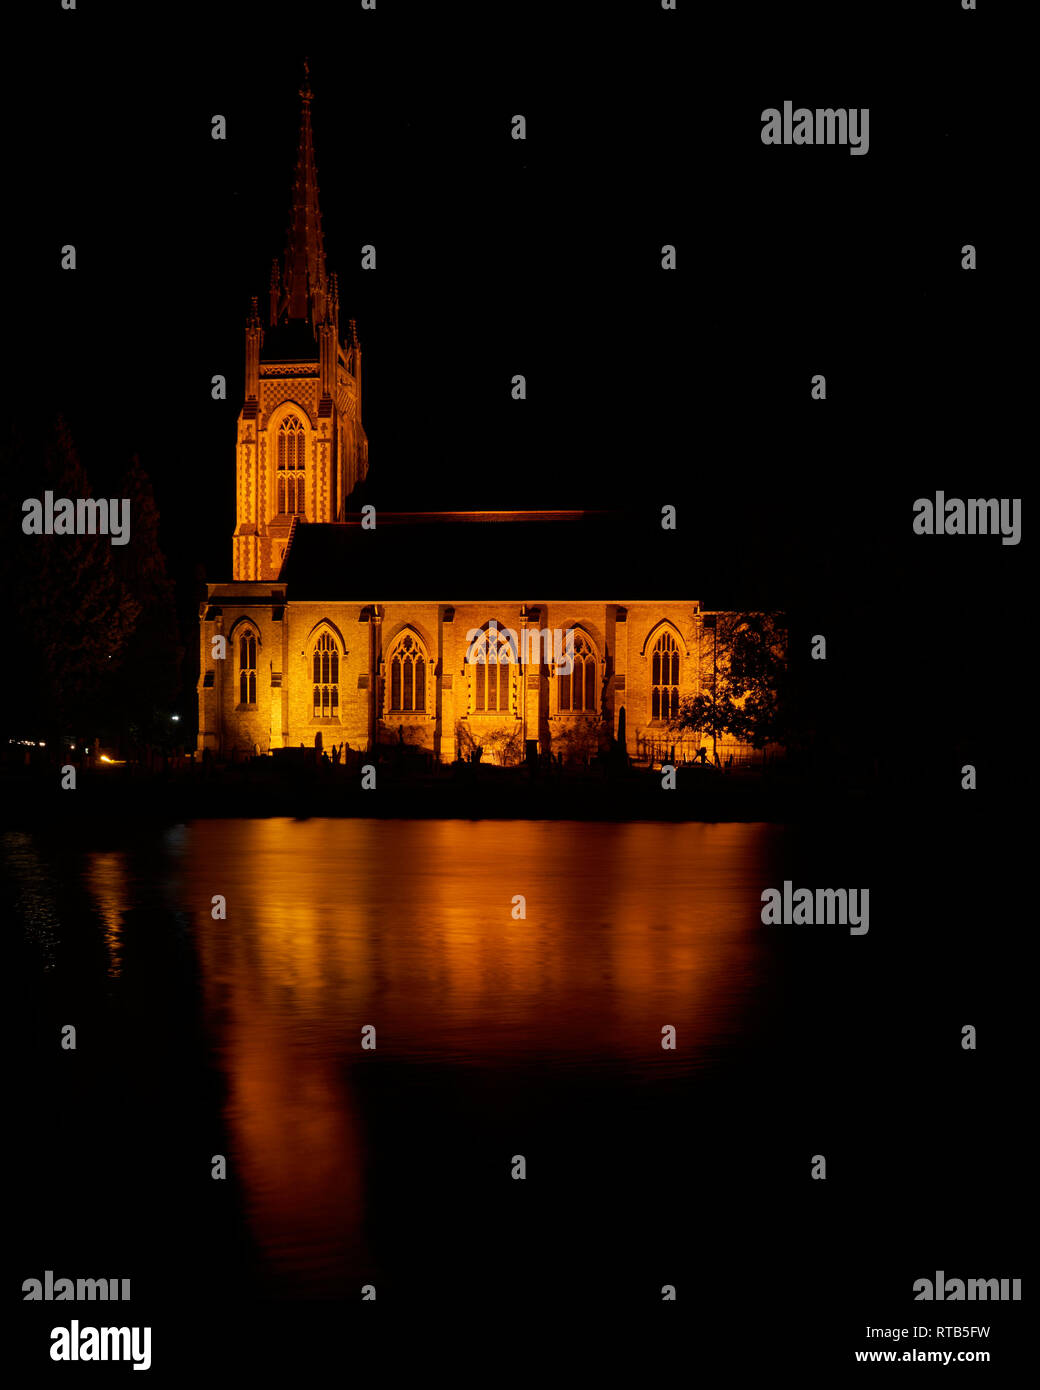 Spiritual All Saints Church at Marlow. Reflected in a flowing River Thames at night. - Stock Image